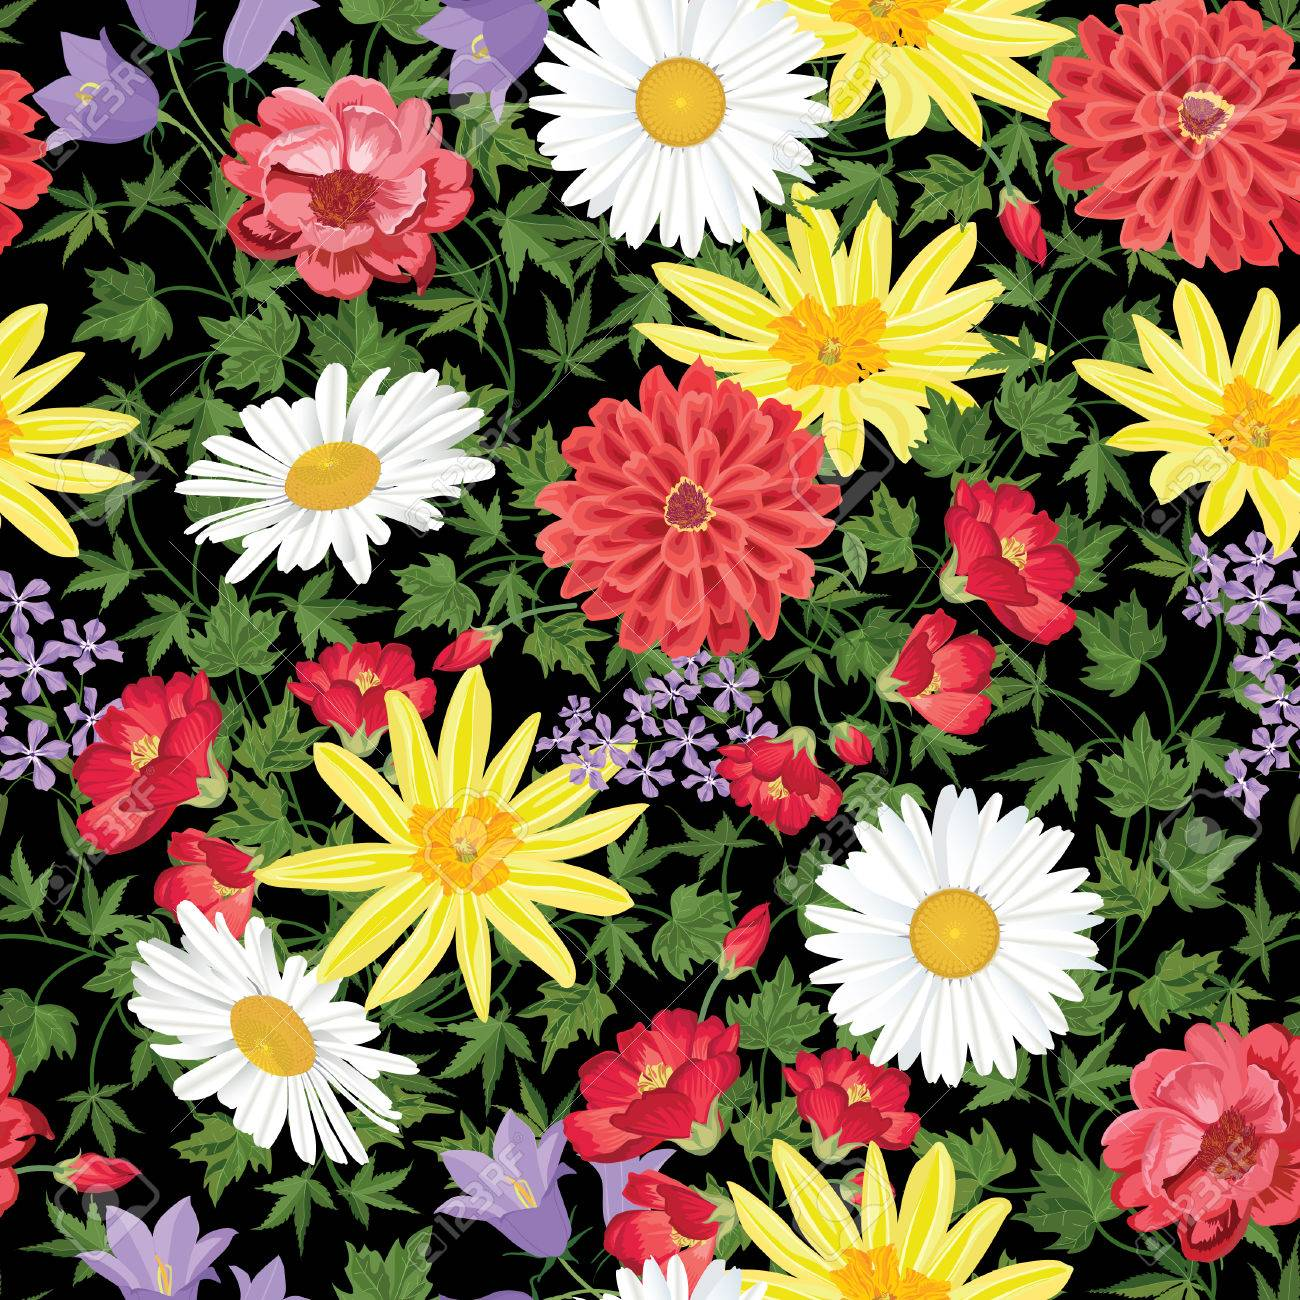 Floral seamless pattern Flower background. Floral seamless texture with flowers. Flourish tiled wallpaper Stock Vector - 46921929